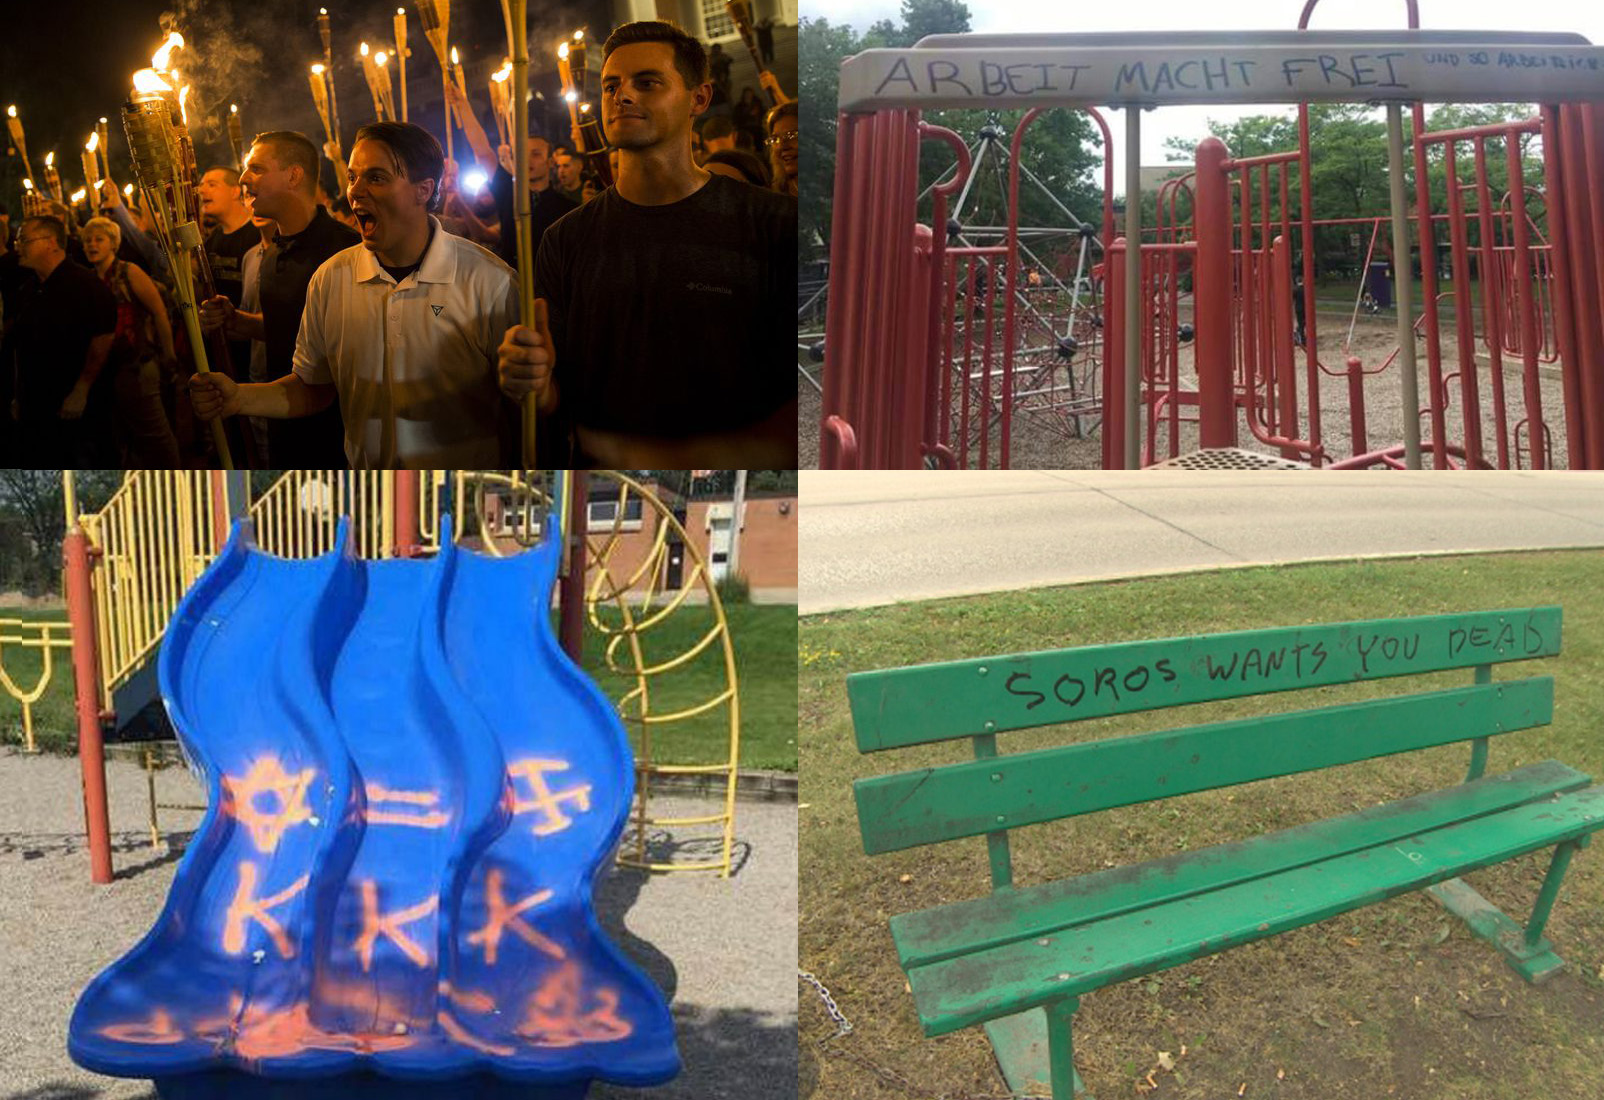 August_Ask_Pic_Charlottesville_related_soros_bench.jpg